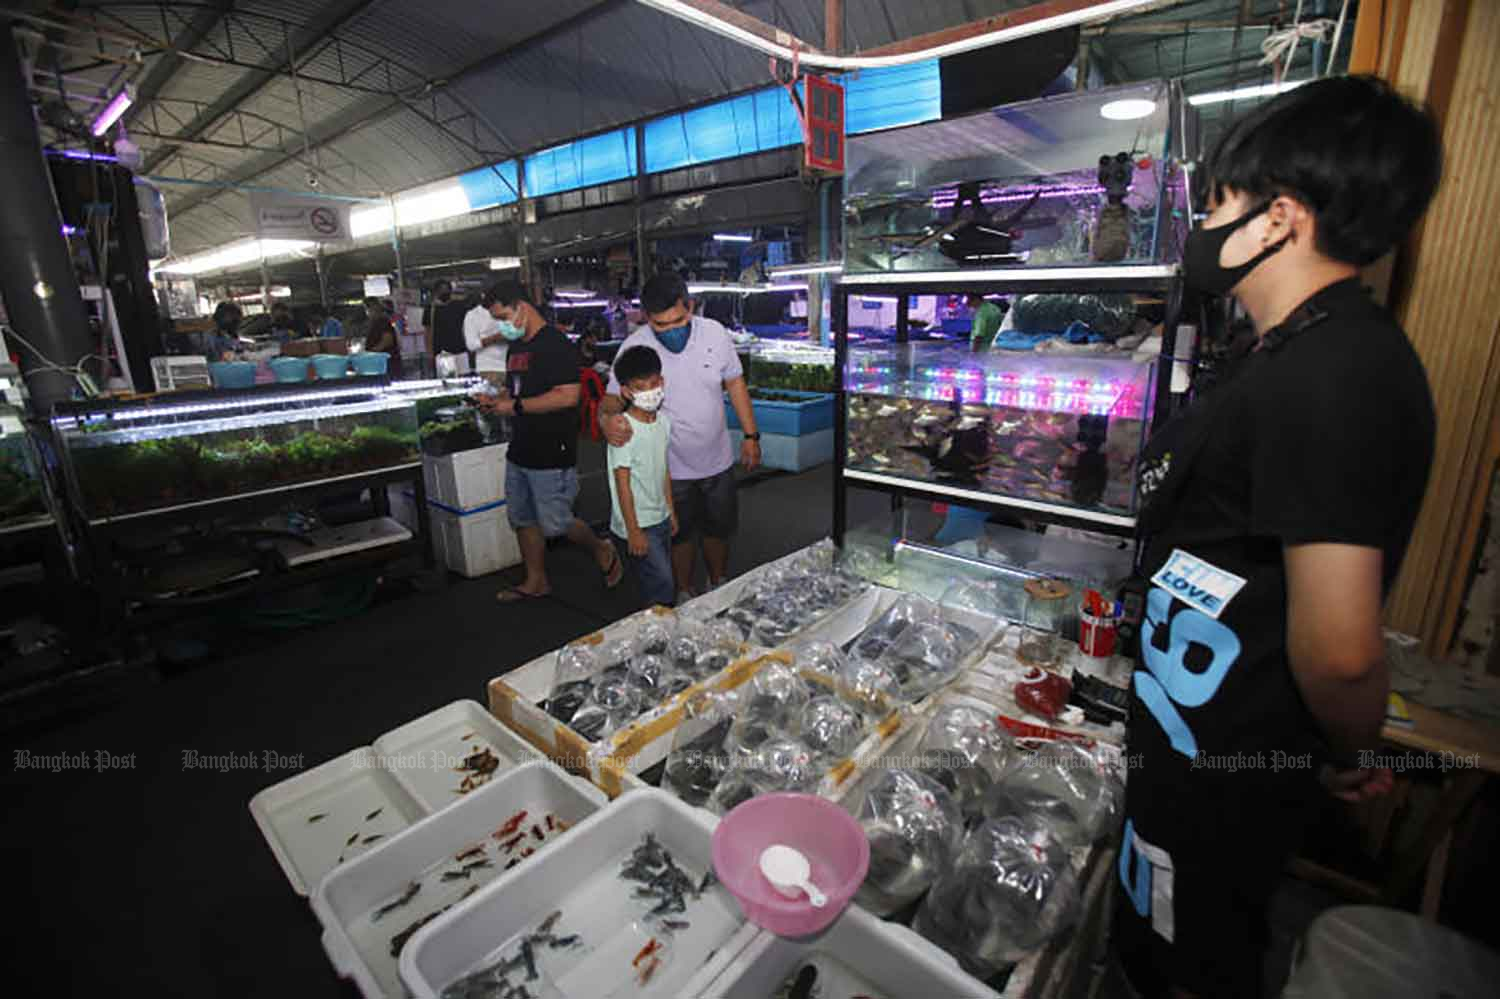 Customers visit pet shops at Chatuchak market in Bangkok last month. (Photo by Nutthawat Wicheanbut)